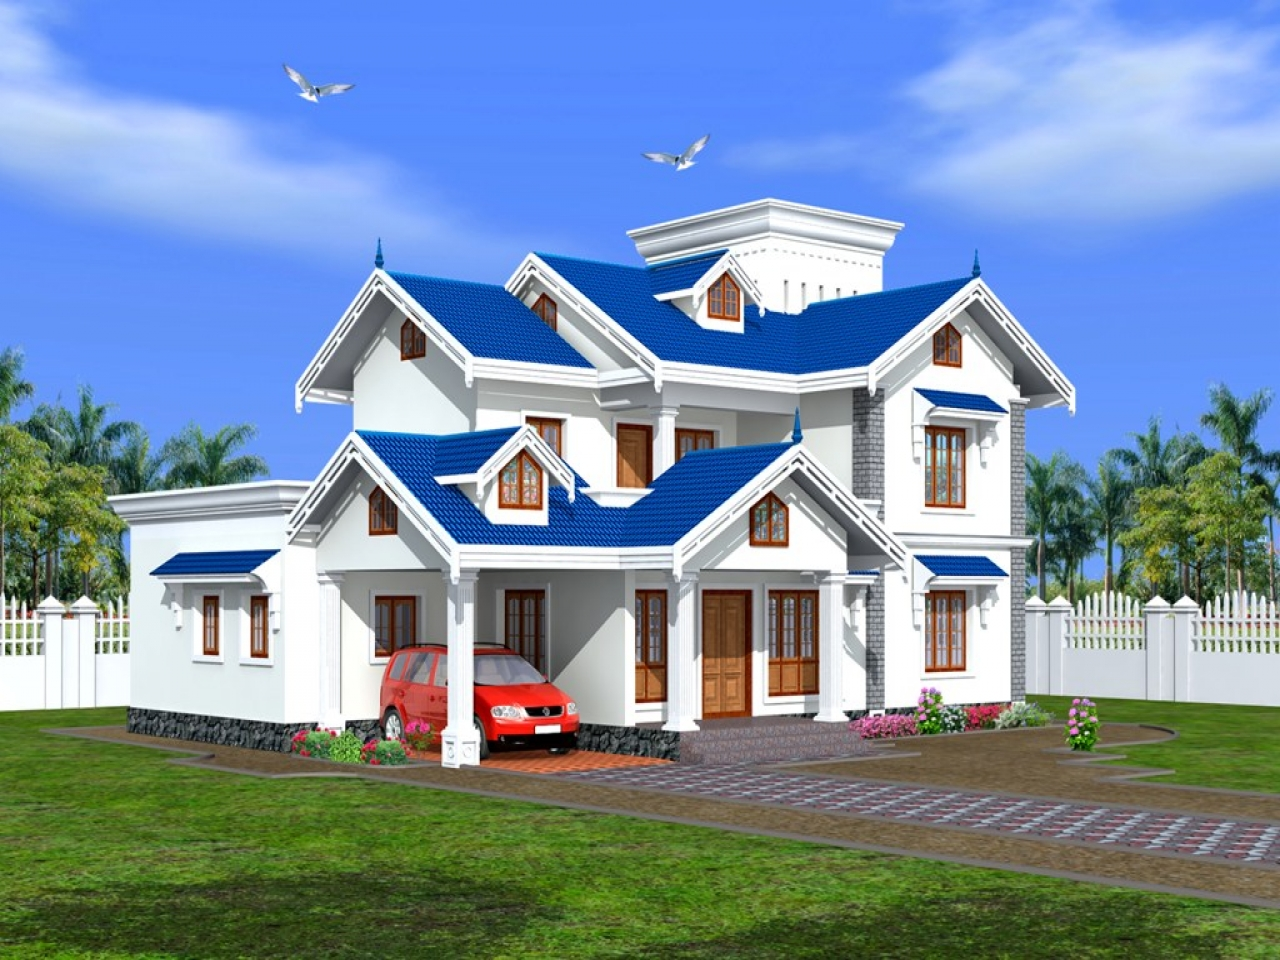 Bungalow house designs native philippine houses design for Bungalow houses designs philippines images